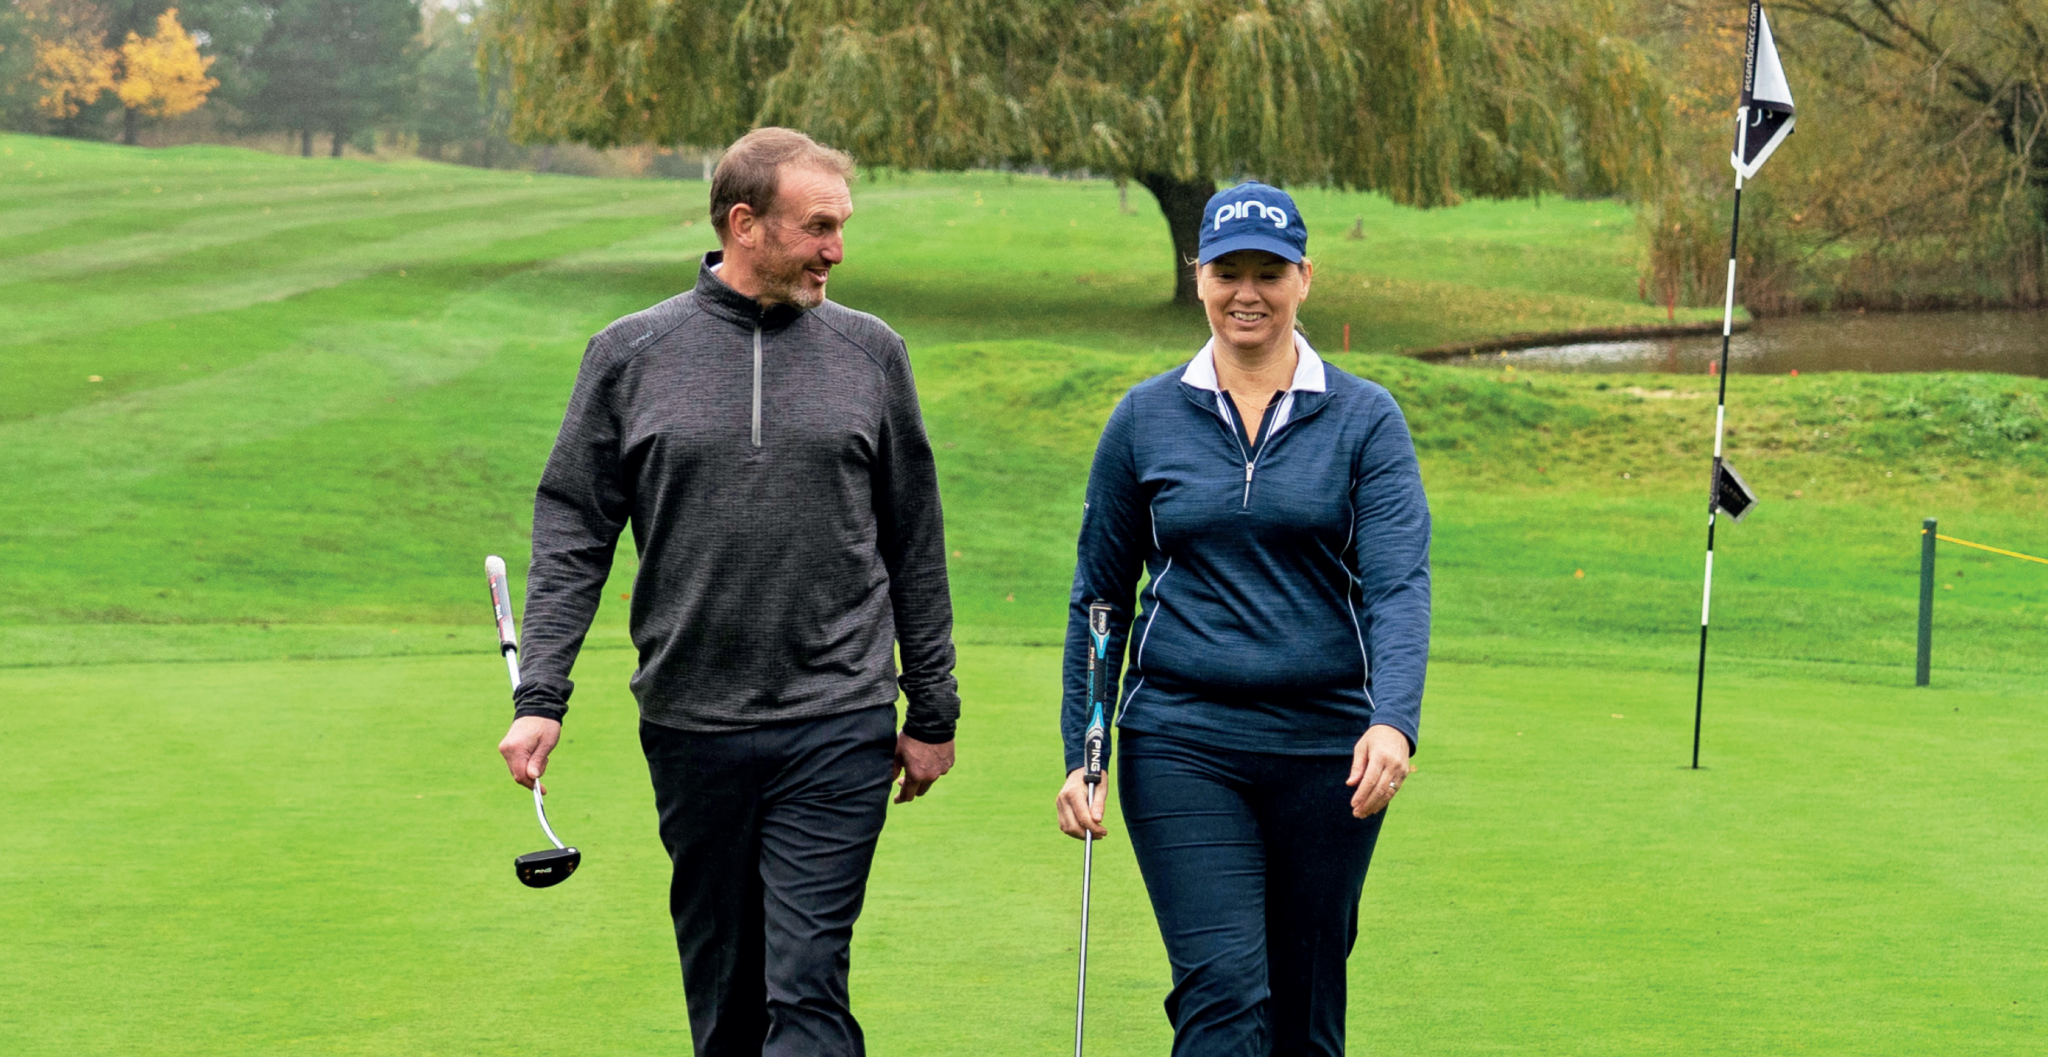 England Golf and PING announce new Mixed Betterball event